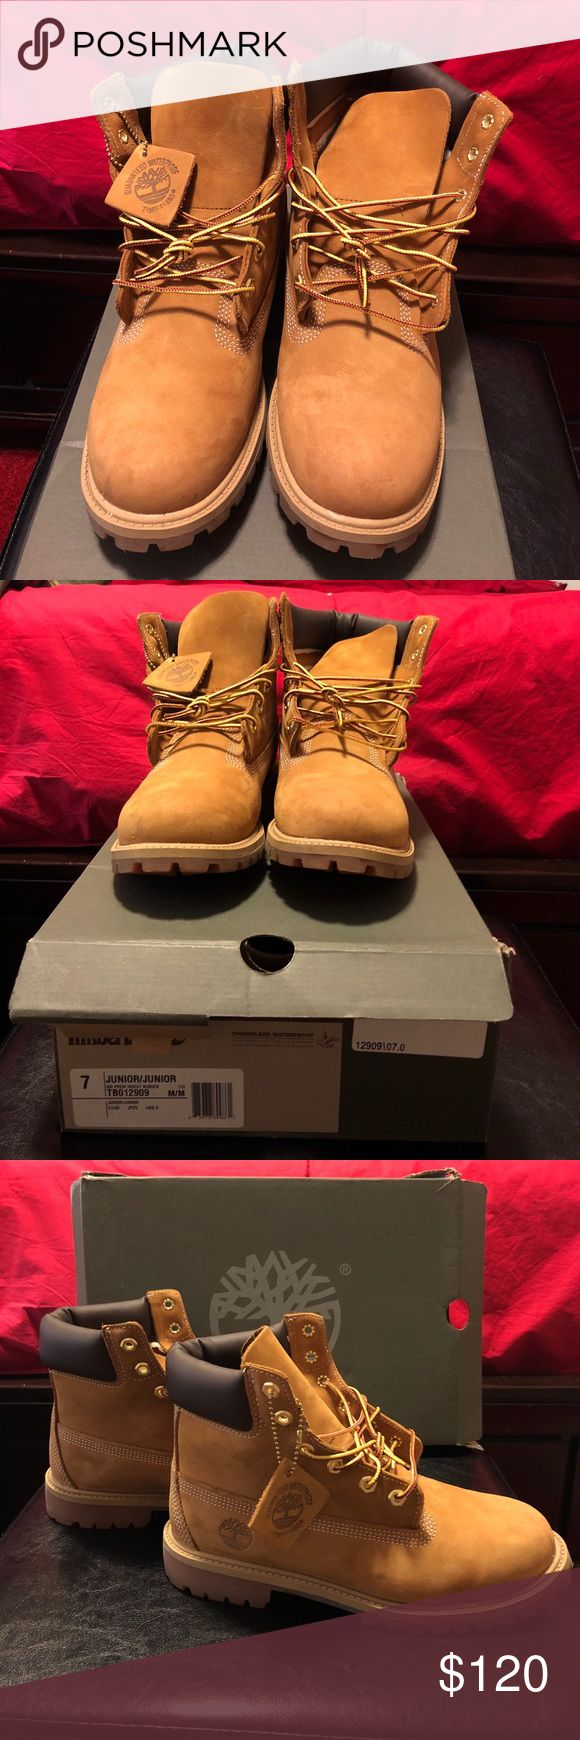 Timberland 7 junior boot Timberland boots size 7 junior. Only worn twice! Wheat Nubuck color. Timberland waterproof boot. Perfect for the winter time! Timberland Shoes Boots